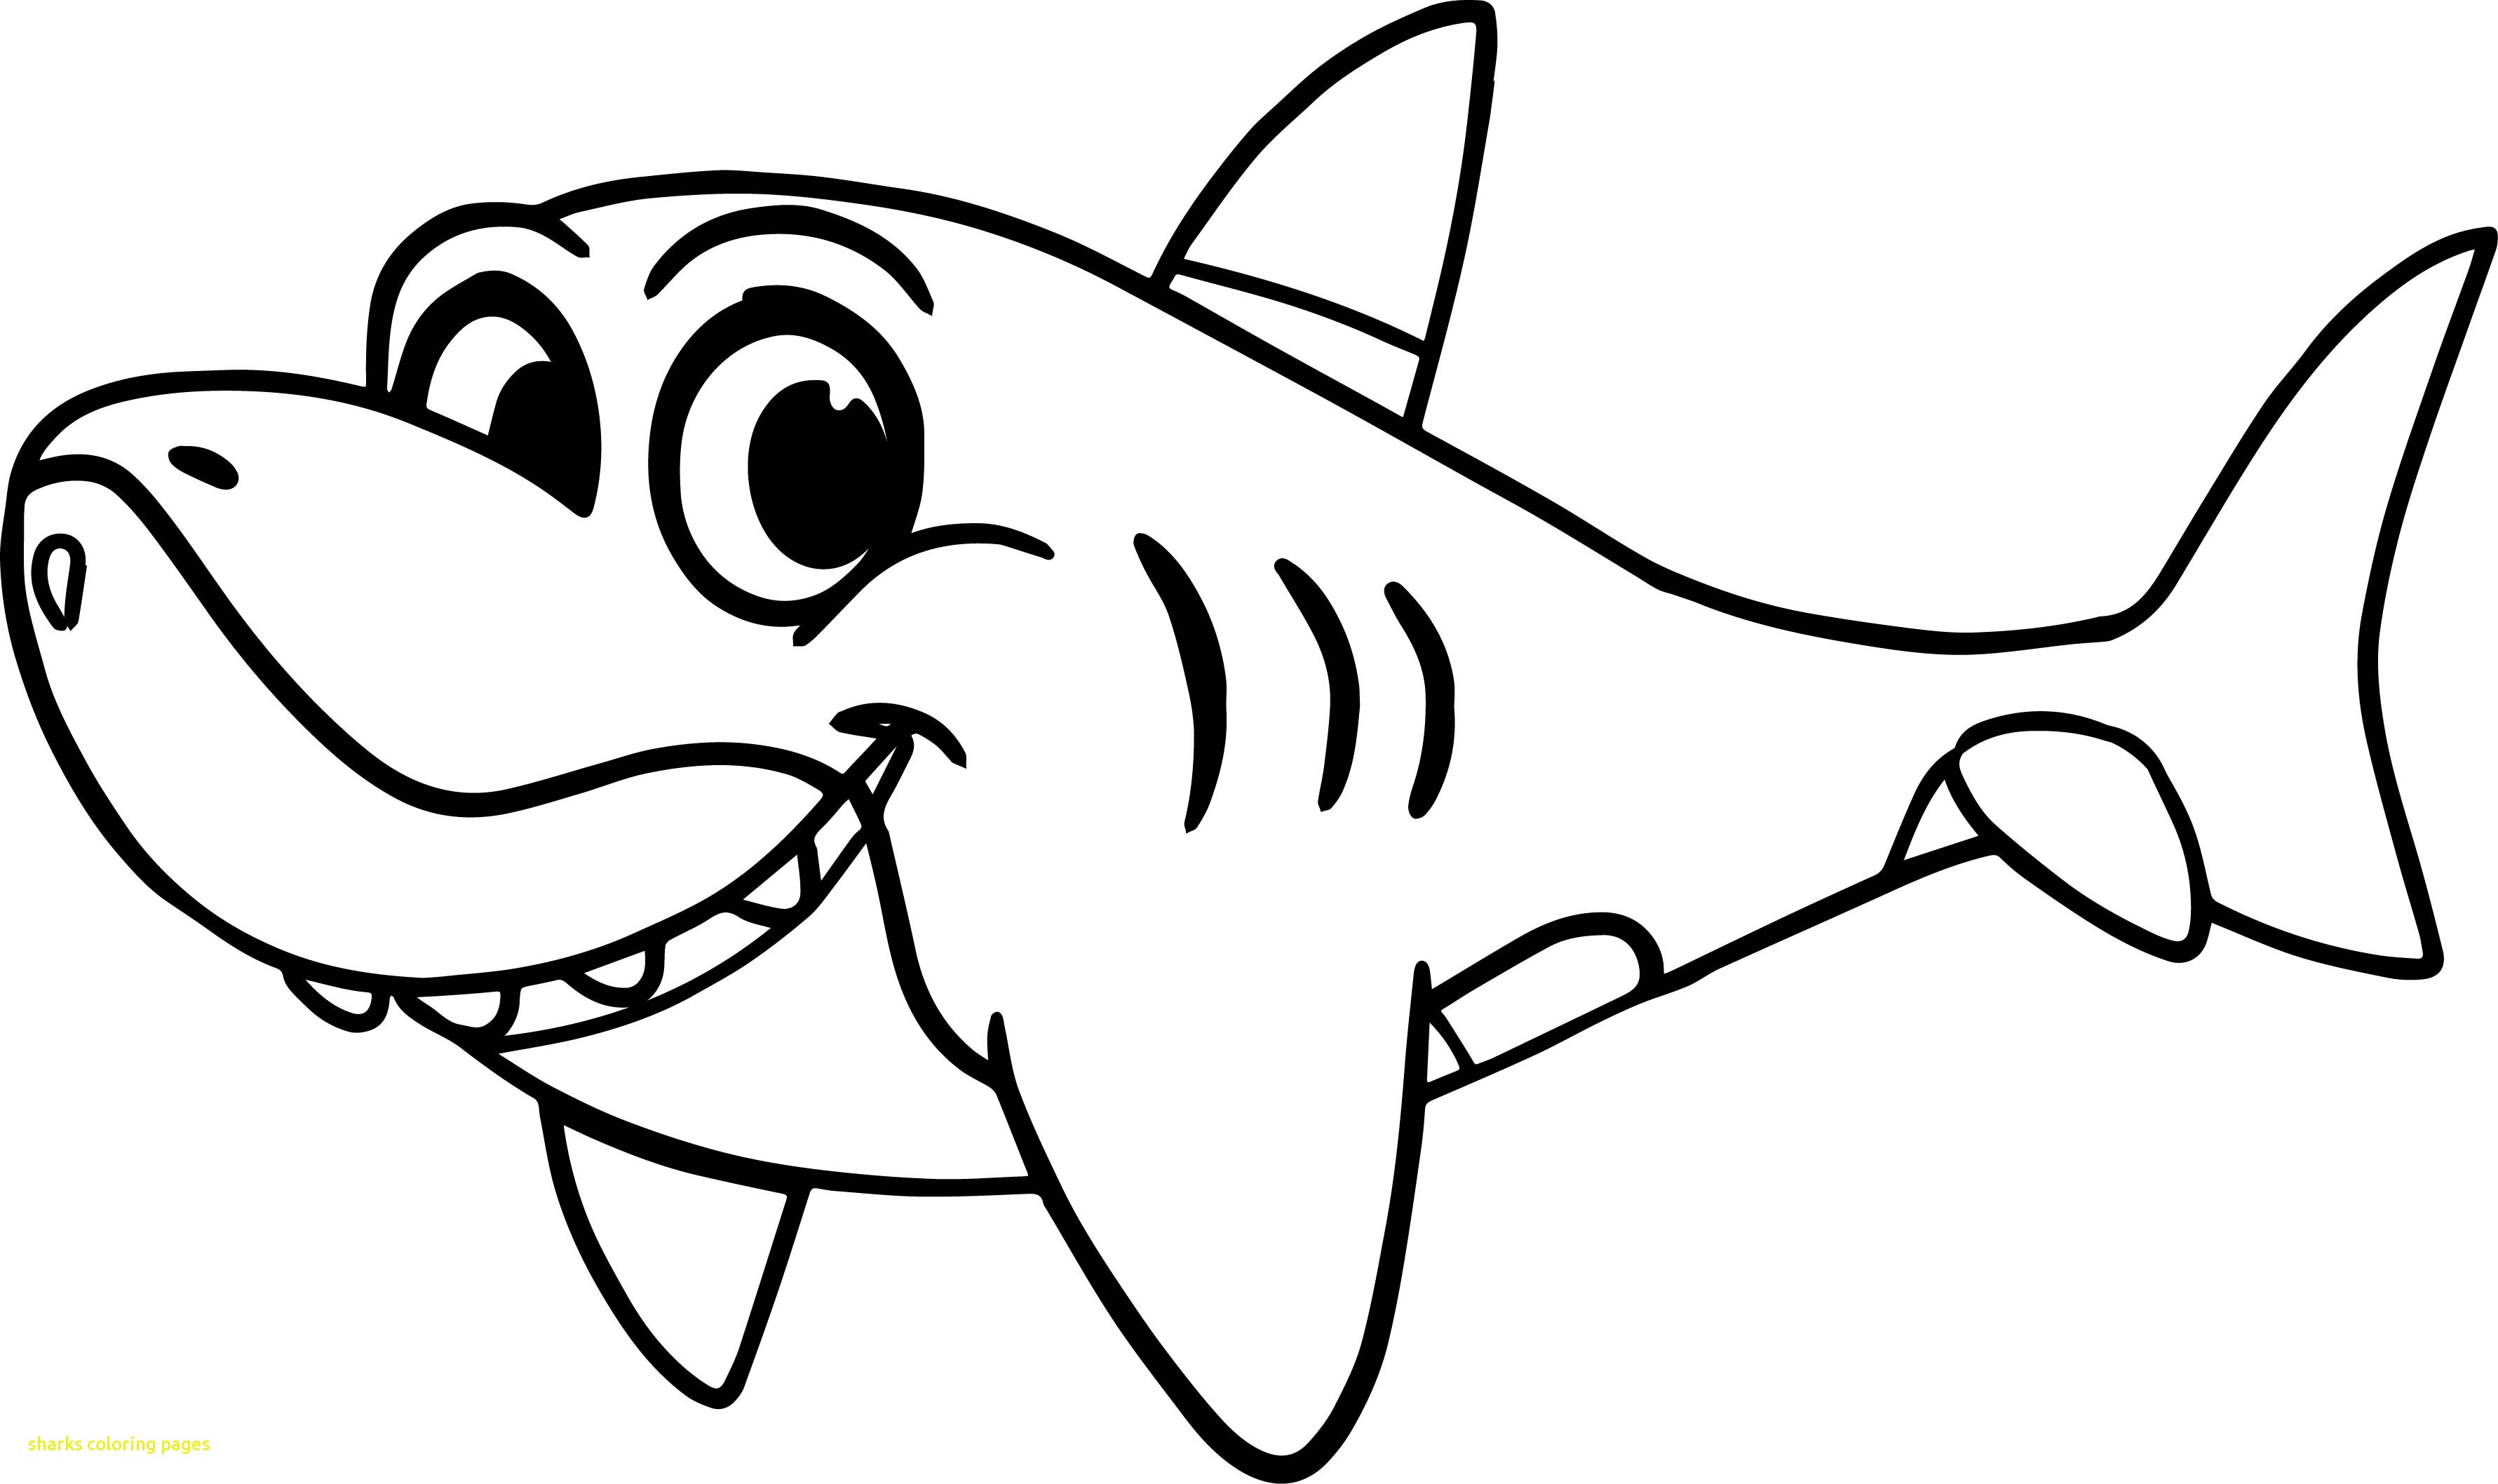 3562x2116 Hammerhead Shark Coloring Page Excellent Pages Fresh Sharks